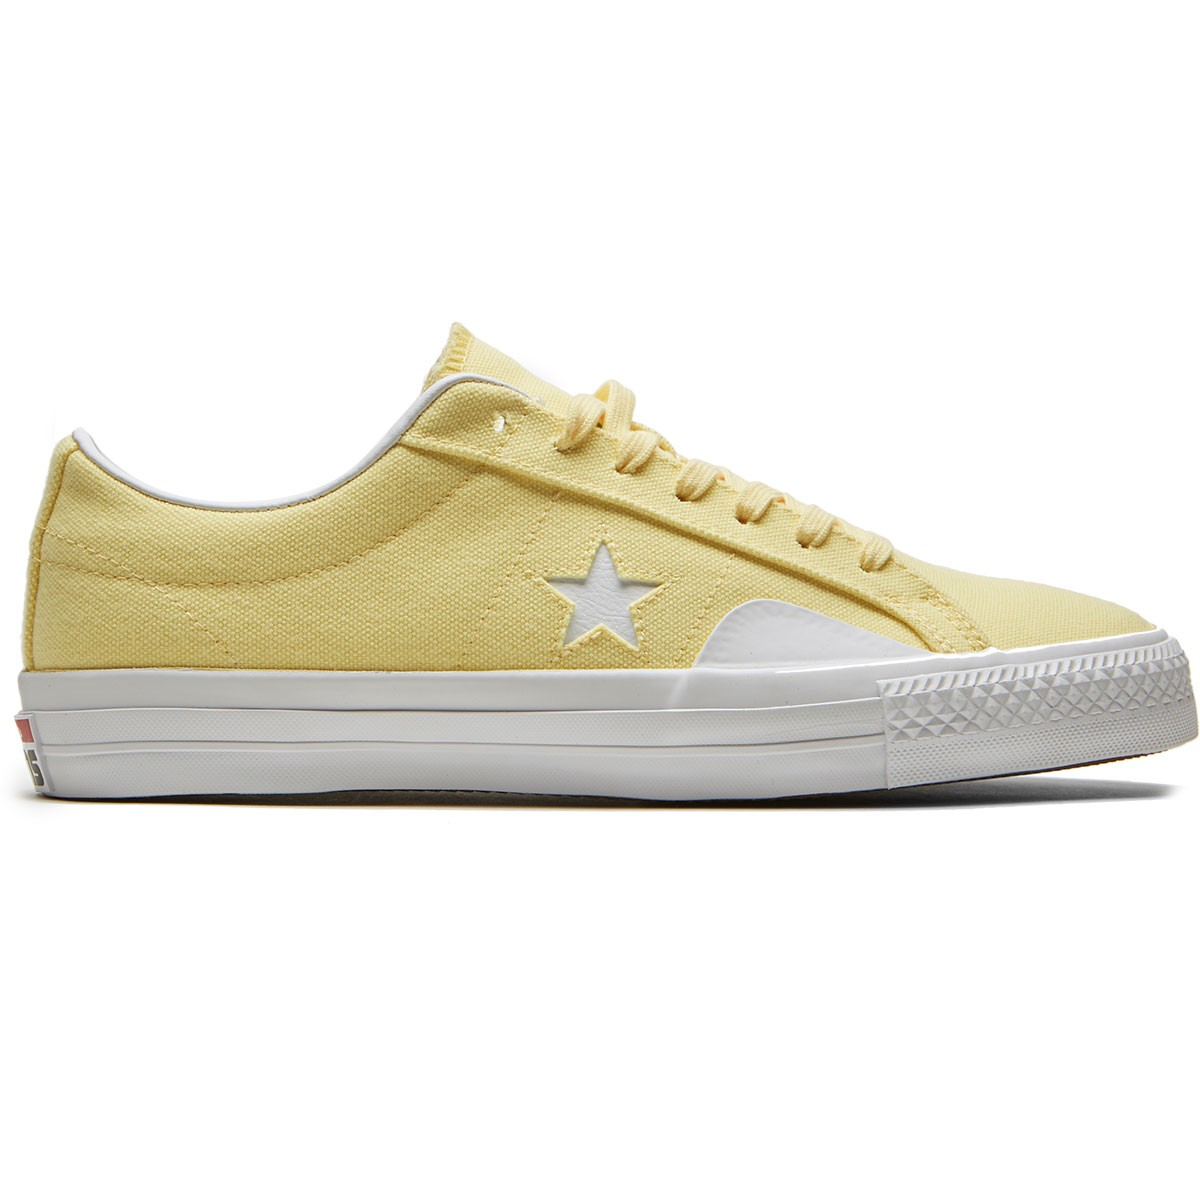 Converse x Chocolate One Star Pro Yellow & White Skate Shoes